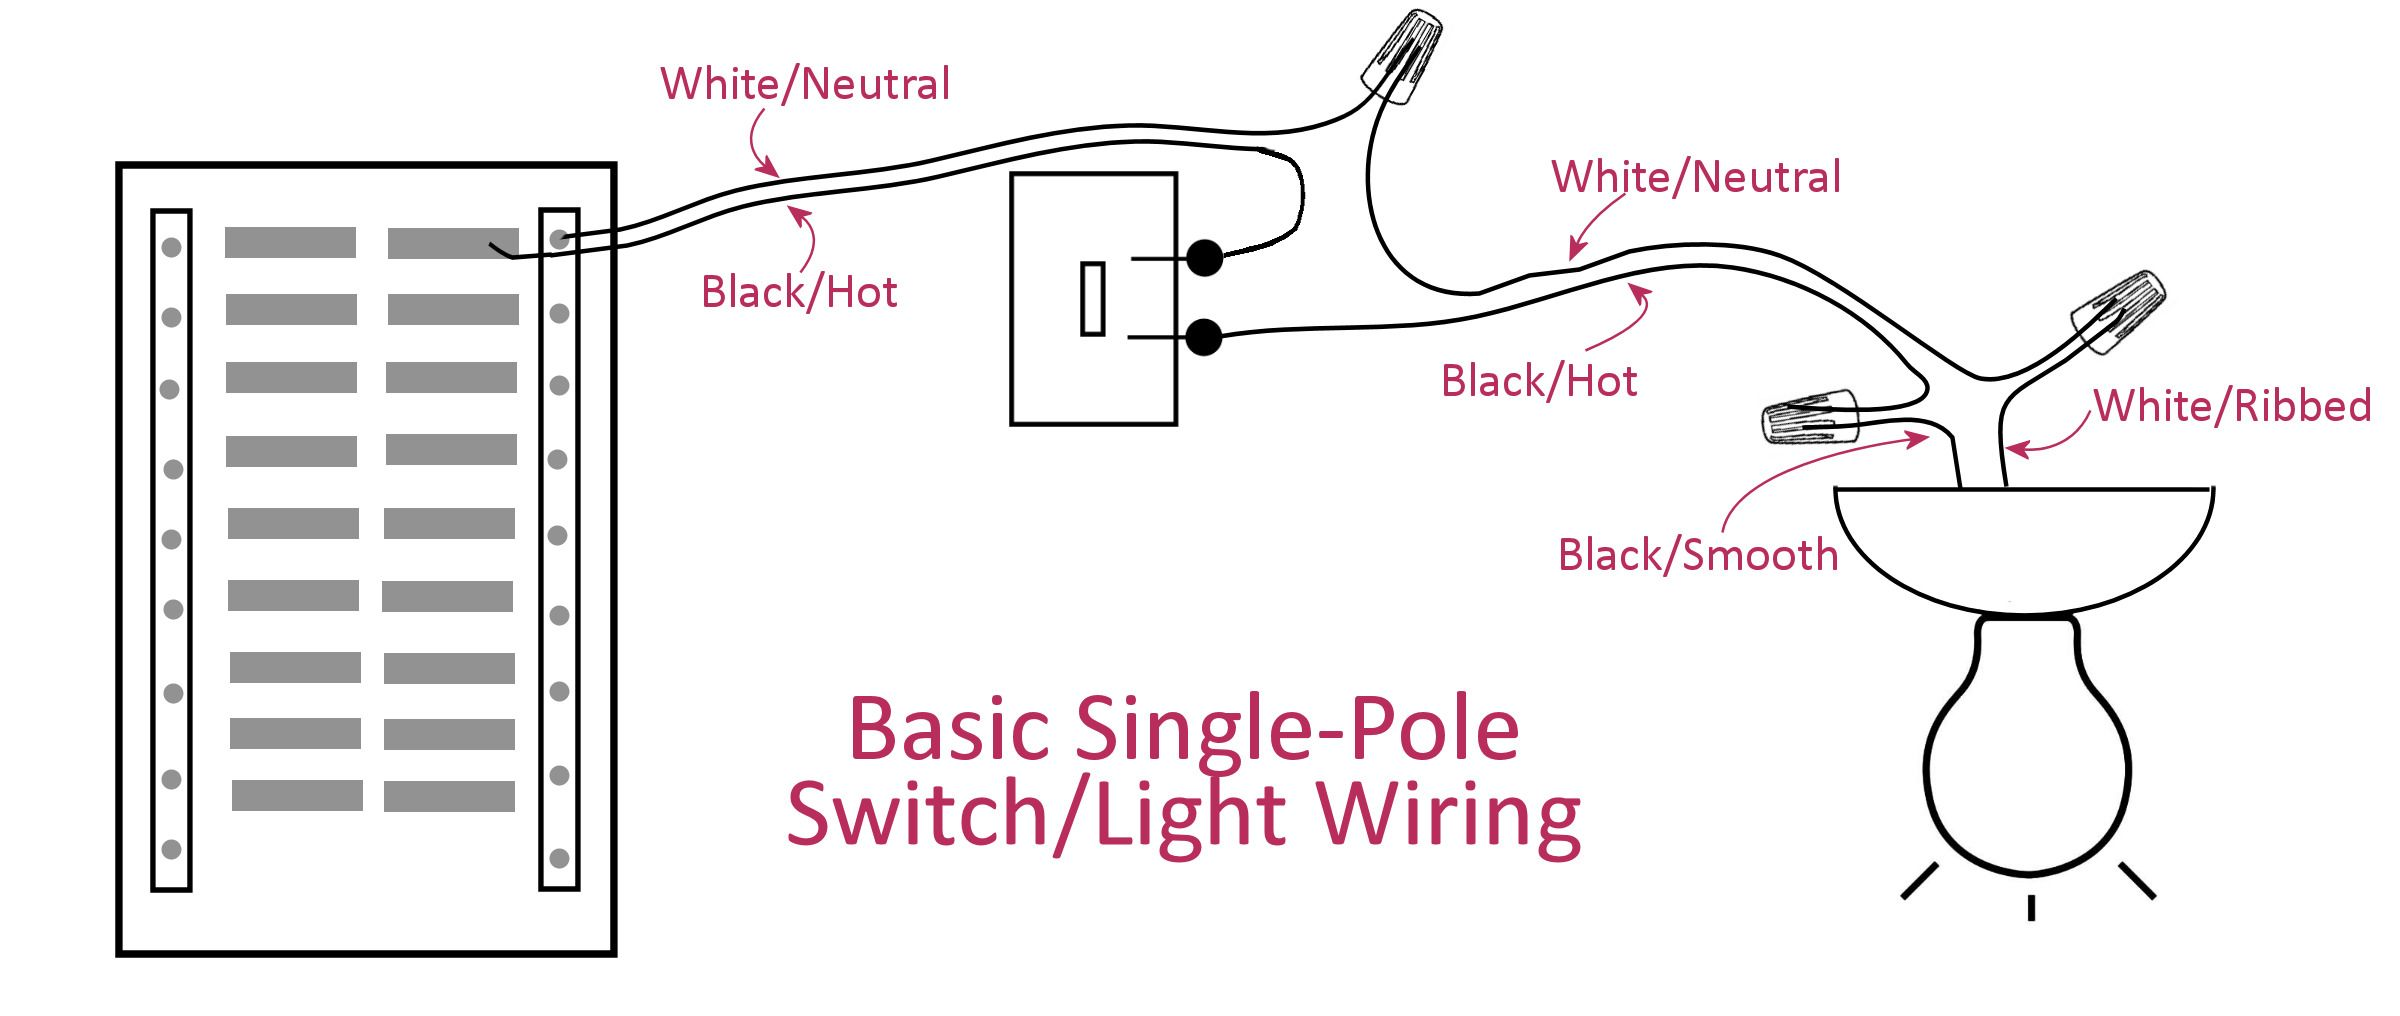 Electrical Basics - Wiring A Basic Single-Pole Light Switch - Addicted 2  Decorating® | Light switch, Light switch wiring, 3 way switch wiringPinterest